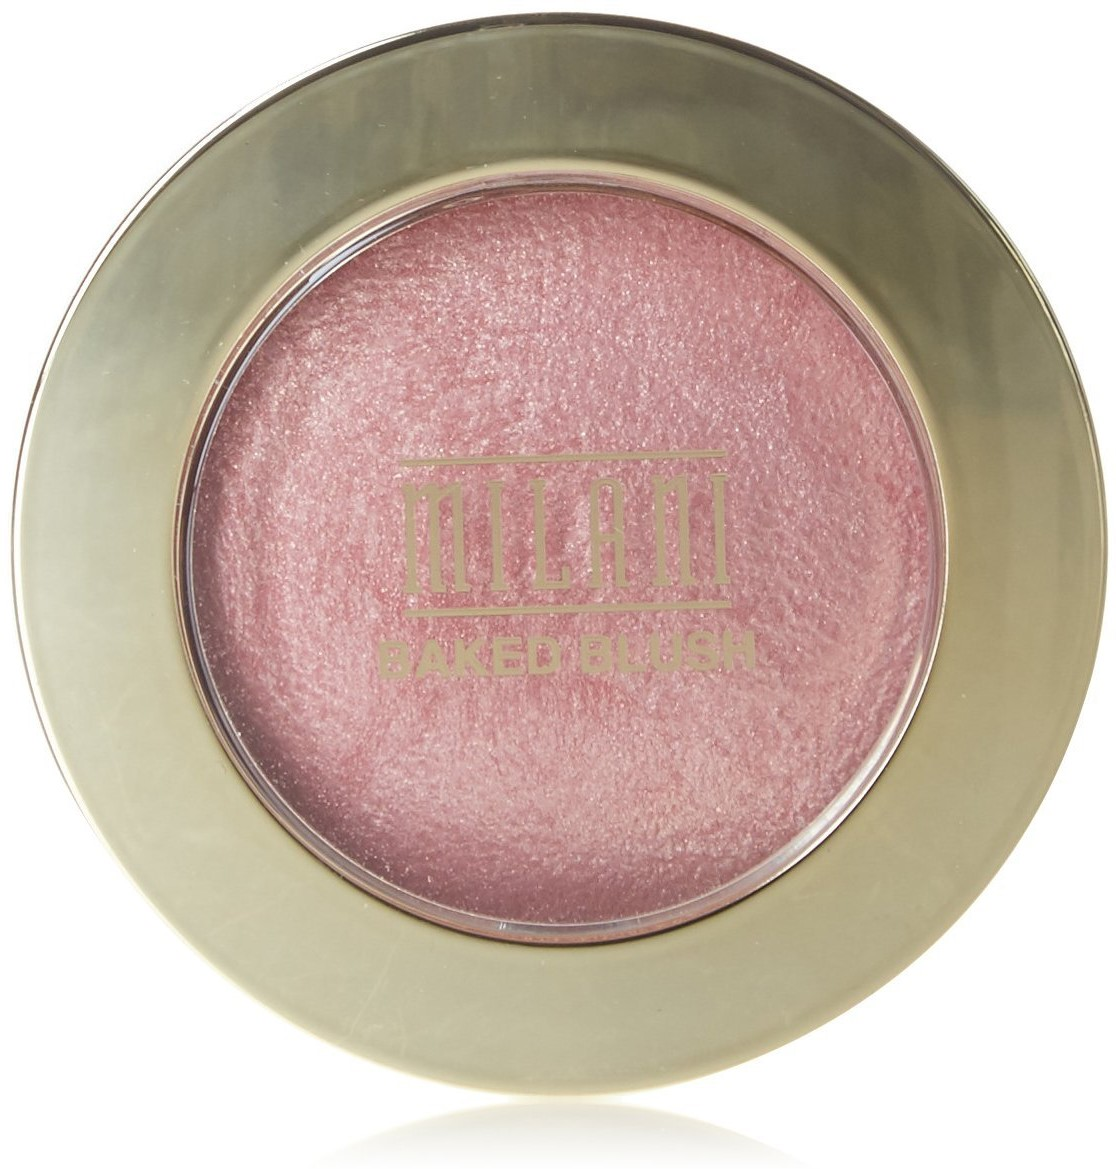 Milani Baked Powder Blush, Dolce Pink [01] 0.12 oz